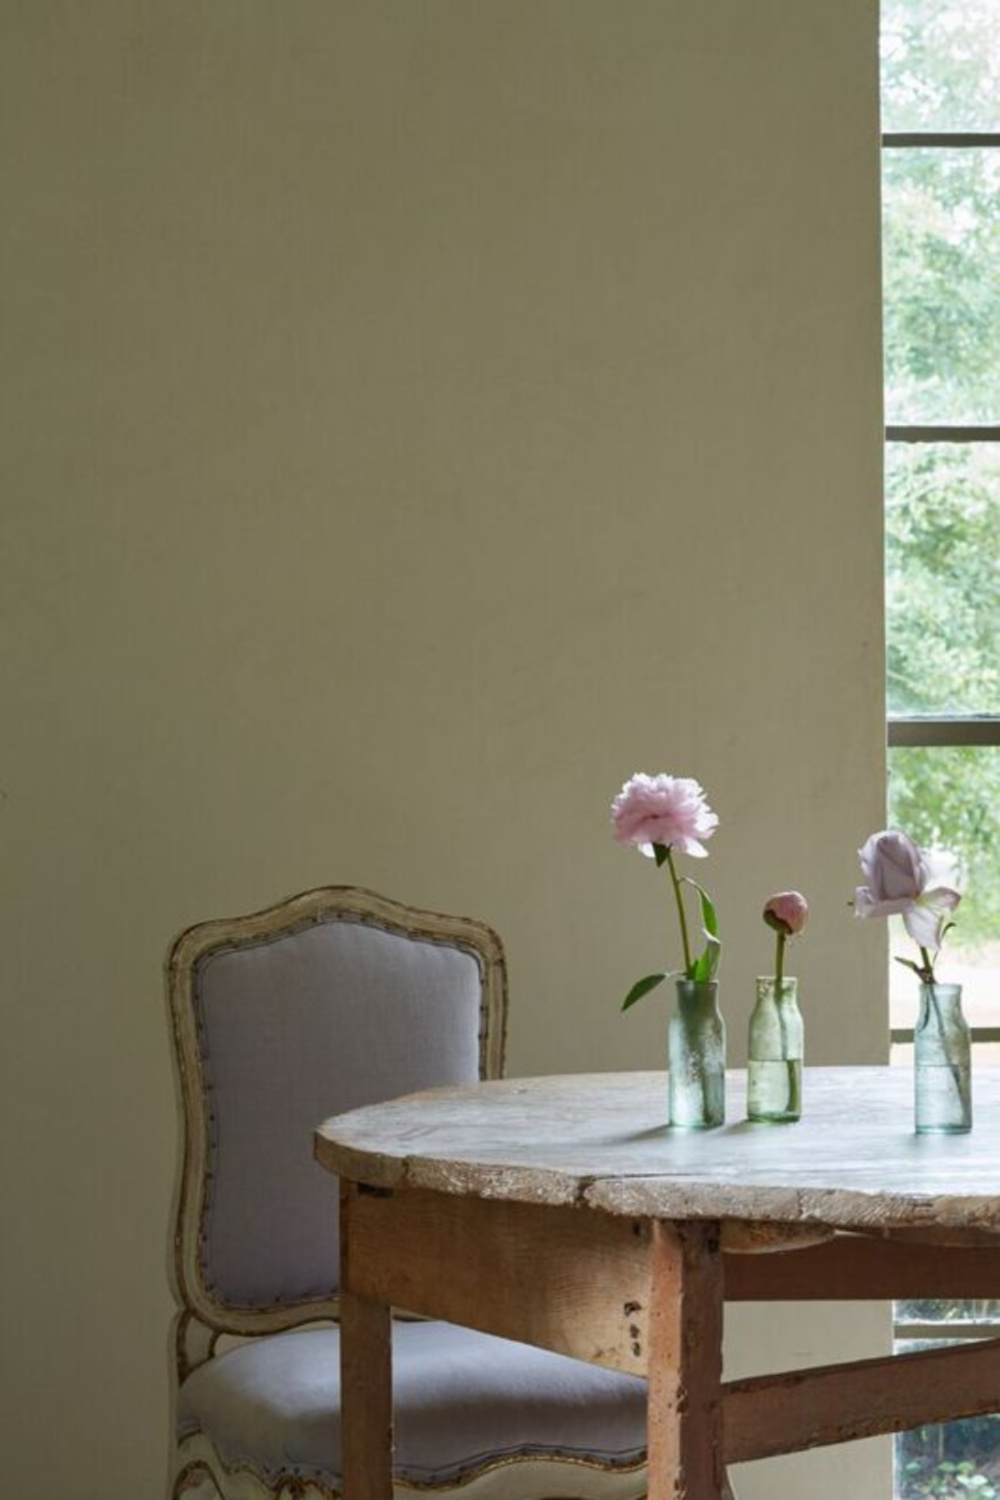 Serene, understated French country dining chair and rustic farm table with simple glass bottles used as vases - Chateau Domingue.